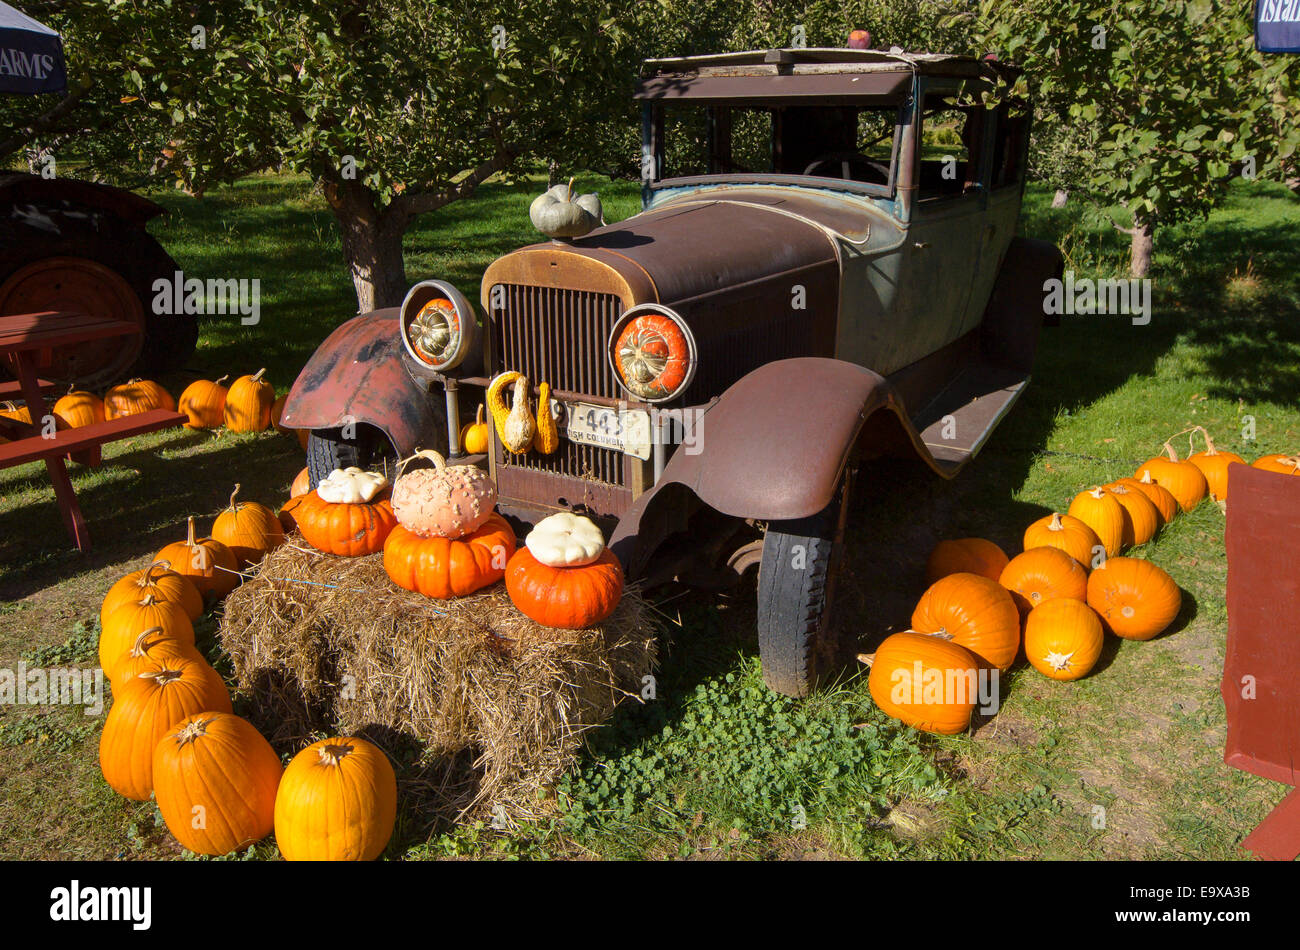 Rusted old jalopy and pumpkin display, Parson's Fruit Stand, Keremeos, Similkameen Region, British Columbia, - Stock Image